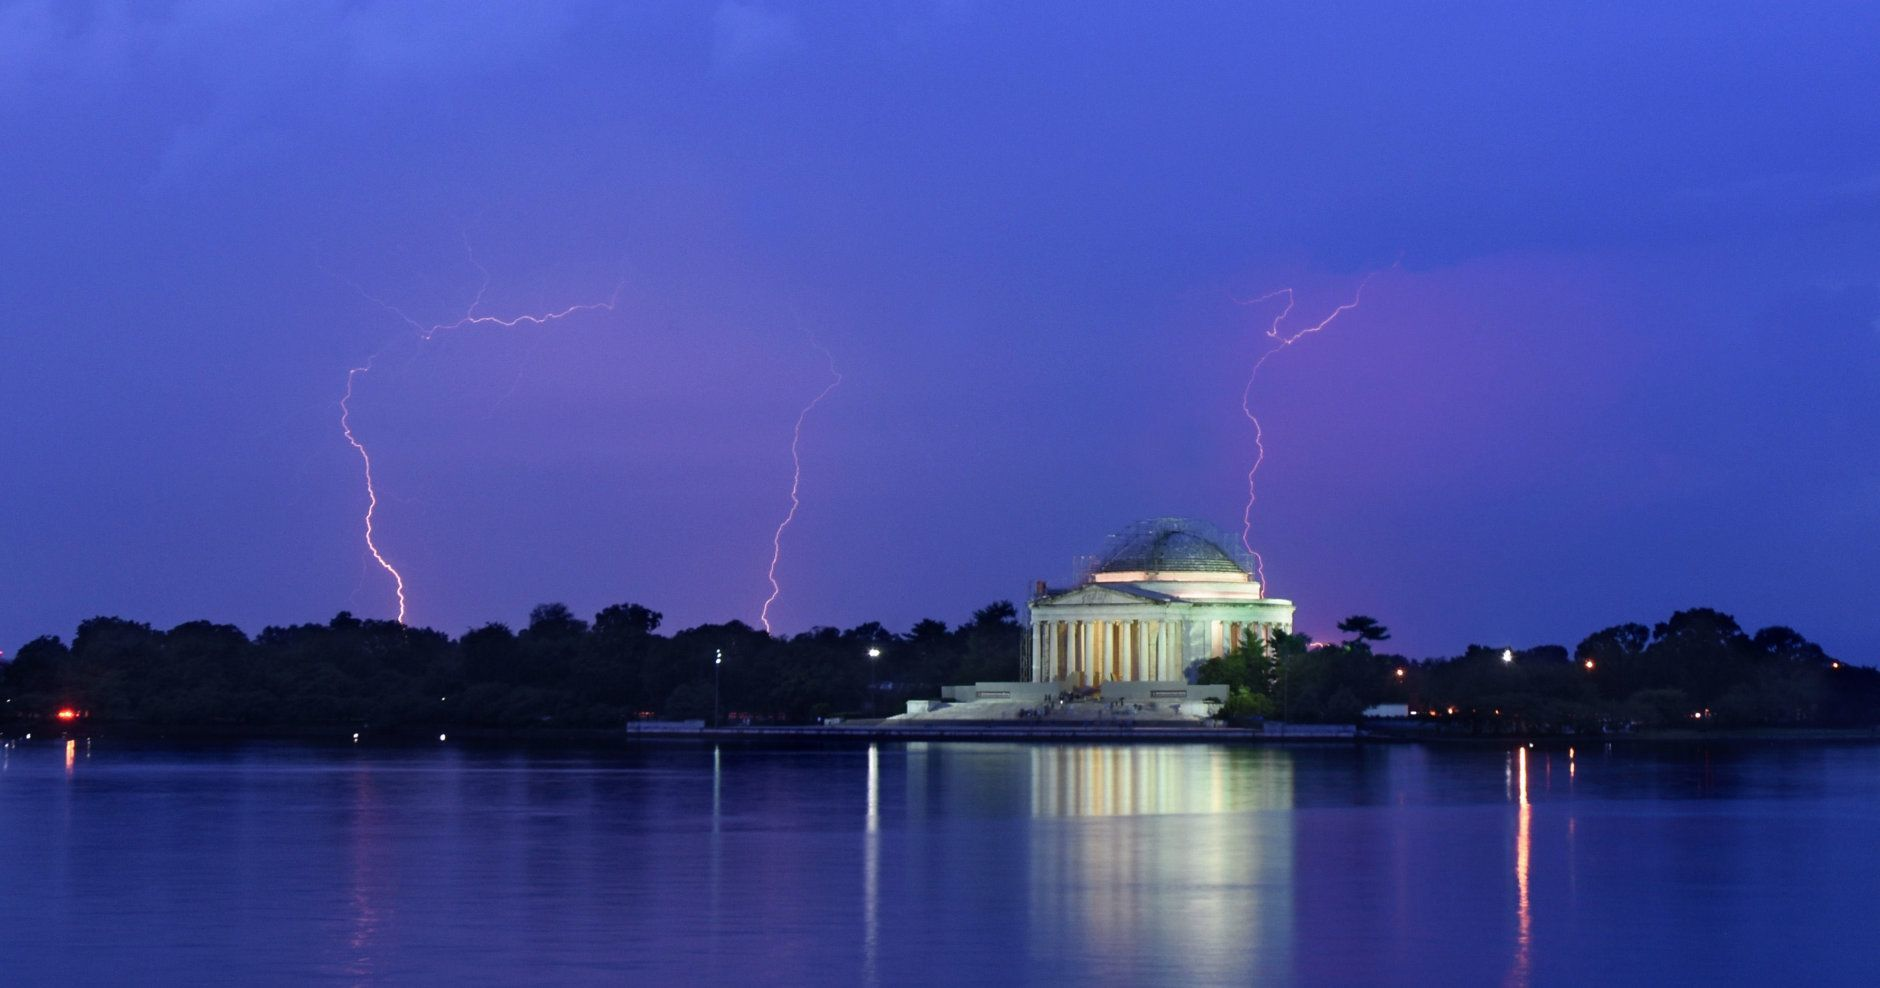 Lightning is seen over the Jefferson Memorial during a storm on July 6, 2019, in D.C. (WTOP/Dave Dildine)